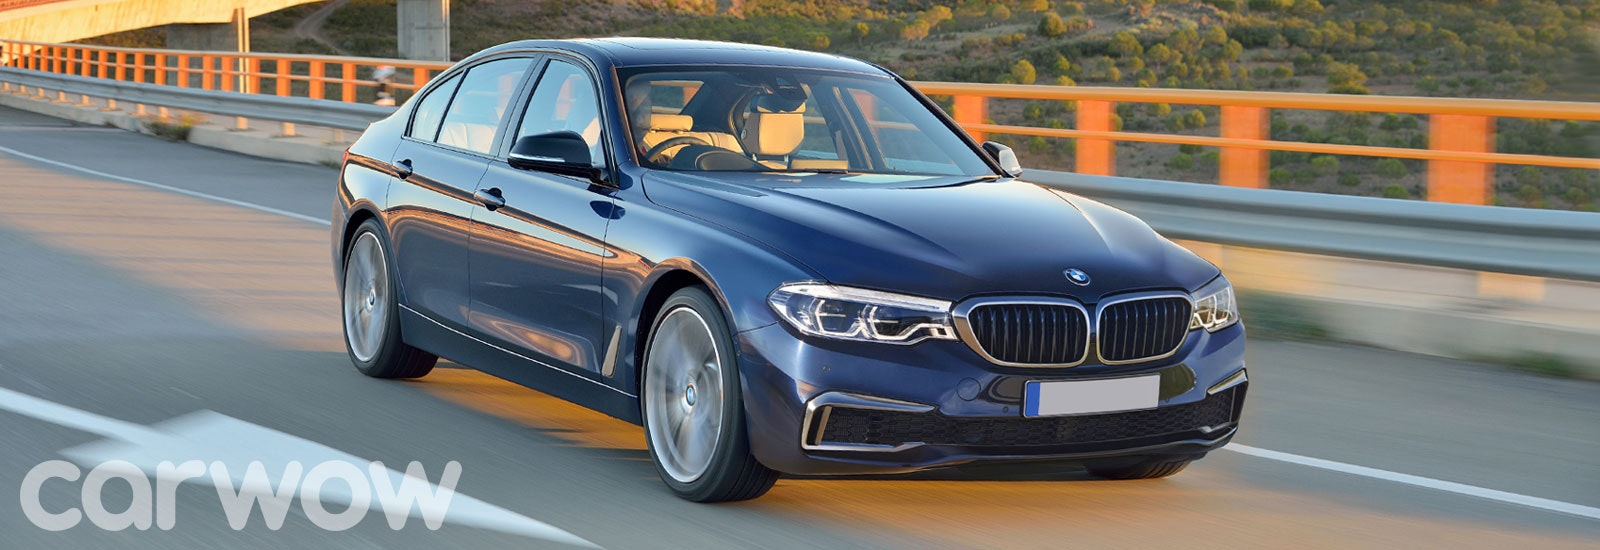 2018 Bmw 3 Series G20 Price Specs Release Date Carwow